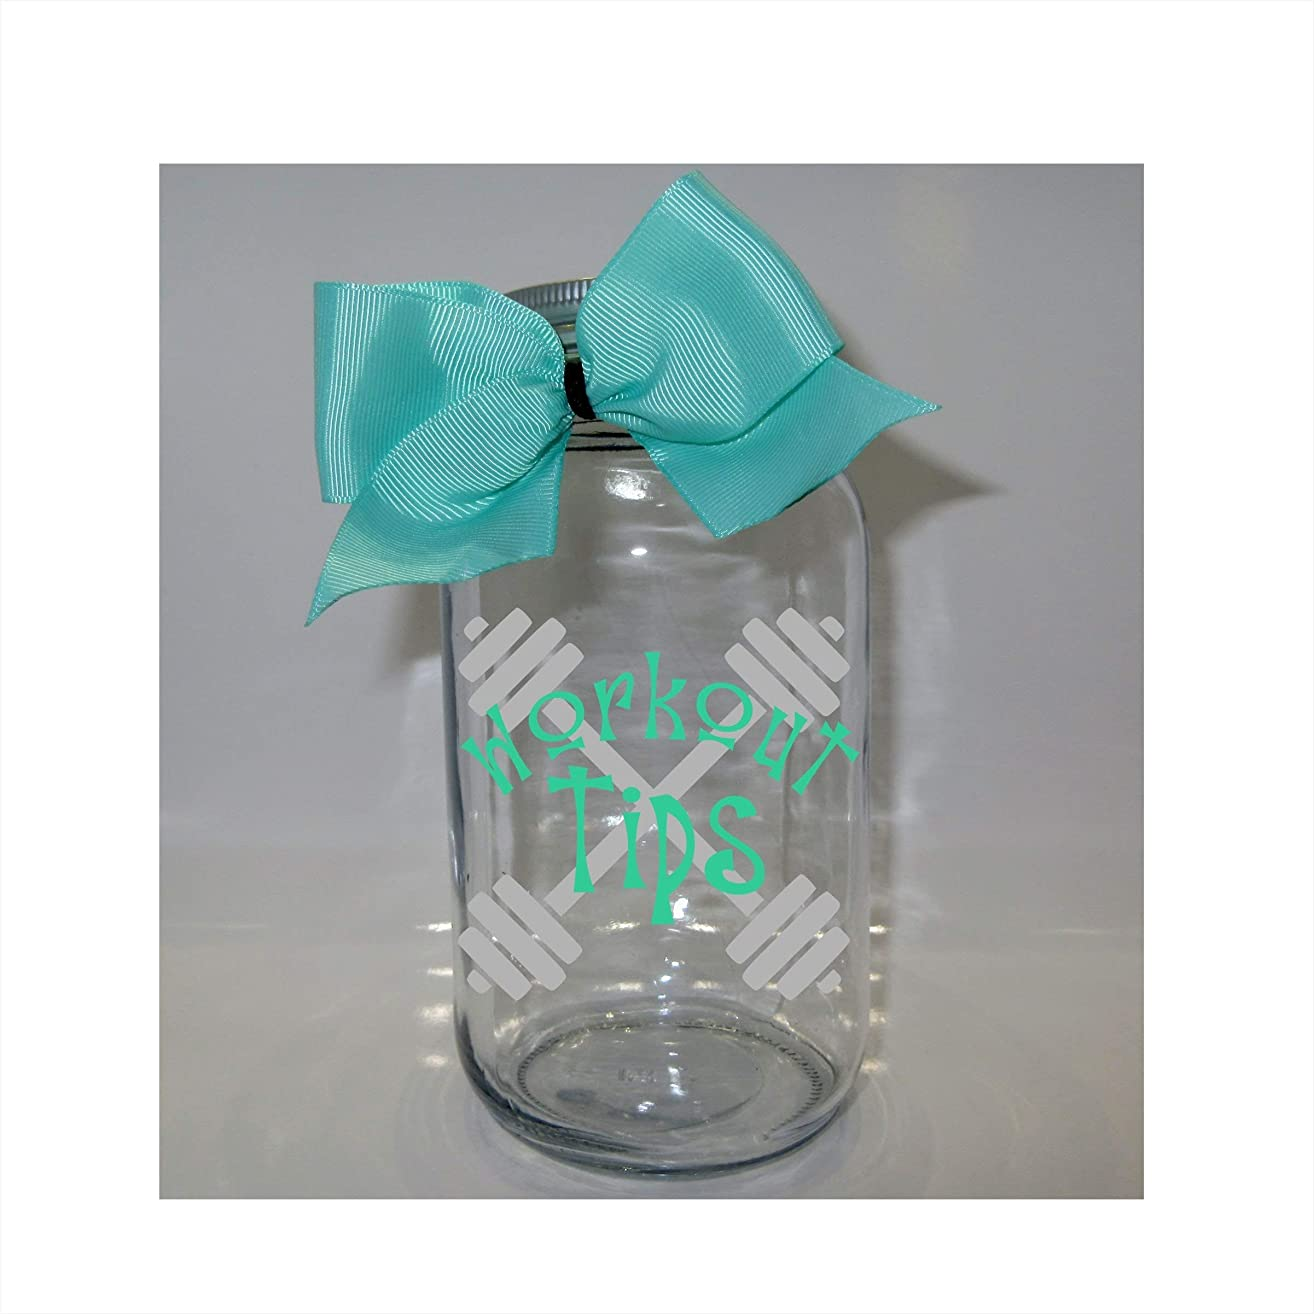 Workout Tips Mason Jar Bank - Coin Slot Lid - Available in 3 Sizes